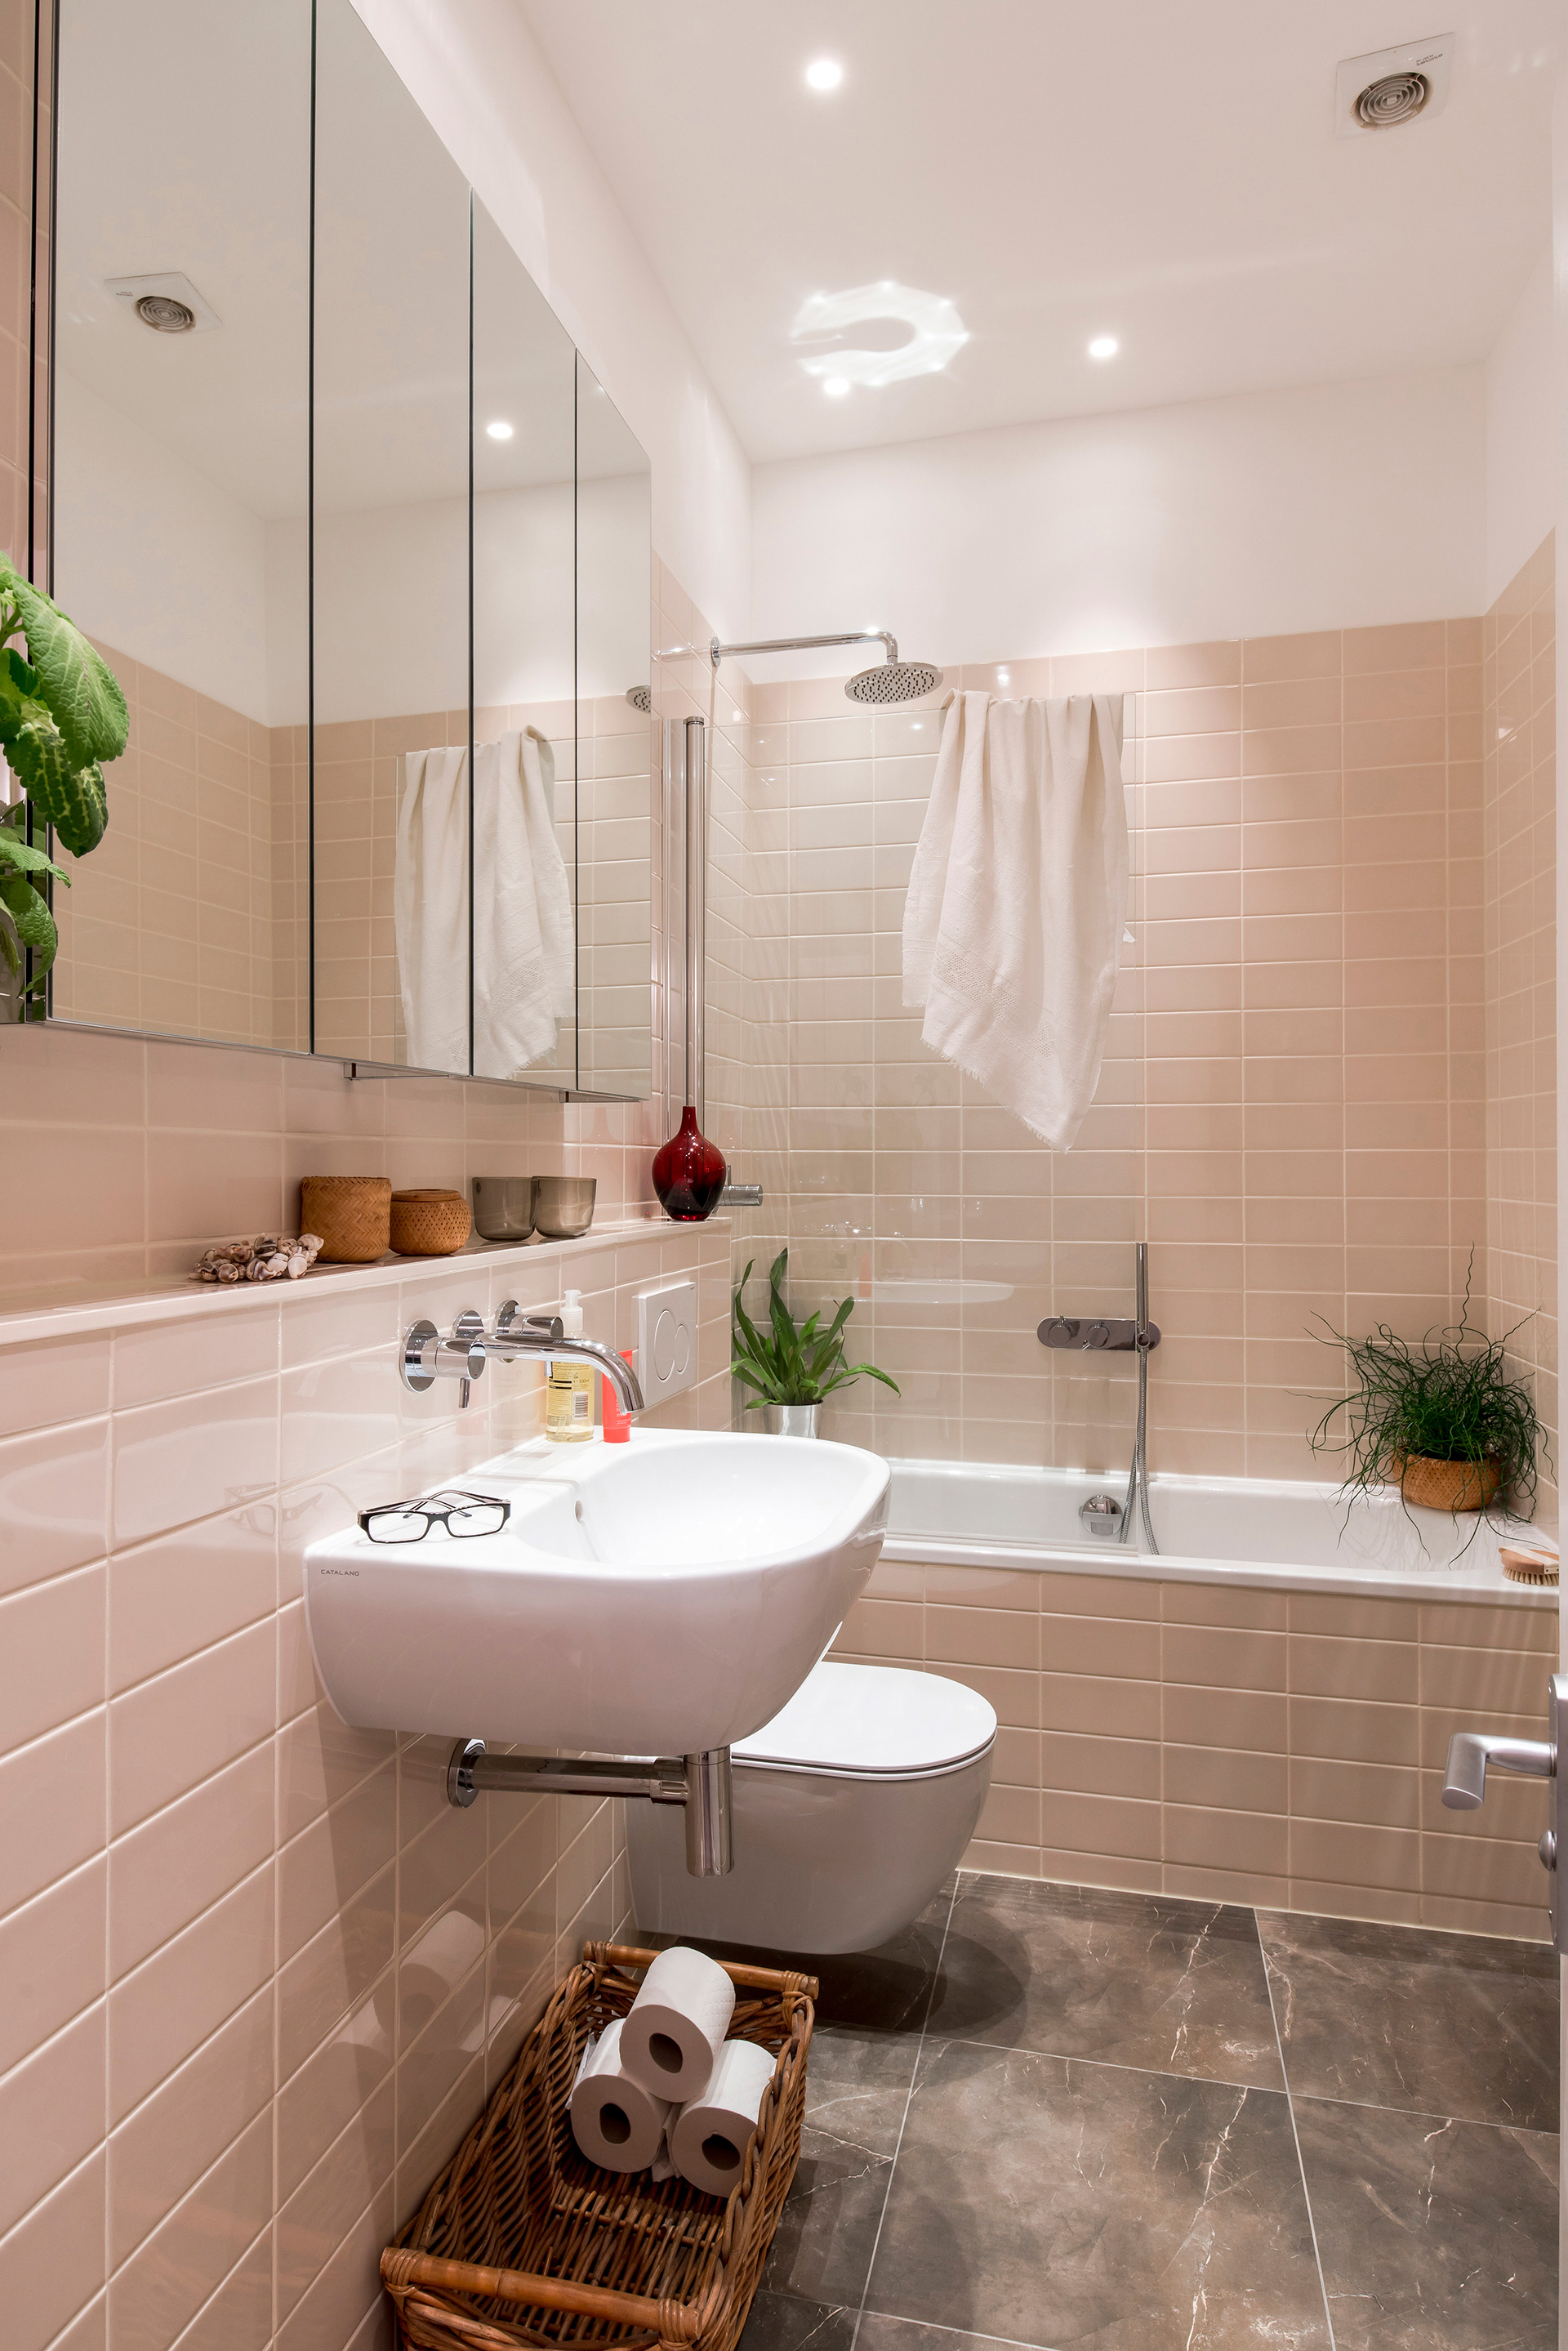 Family bathroom with glossy ref;ective tiles and good lighting to make the space feel light and airy. Storage cubbies and shelf were introduced for extra family storage of bath toys and toiletries.